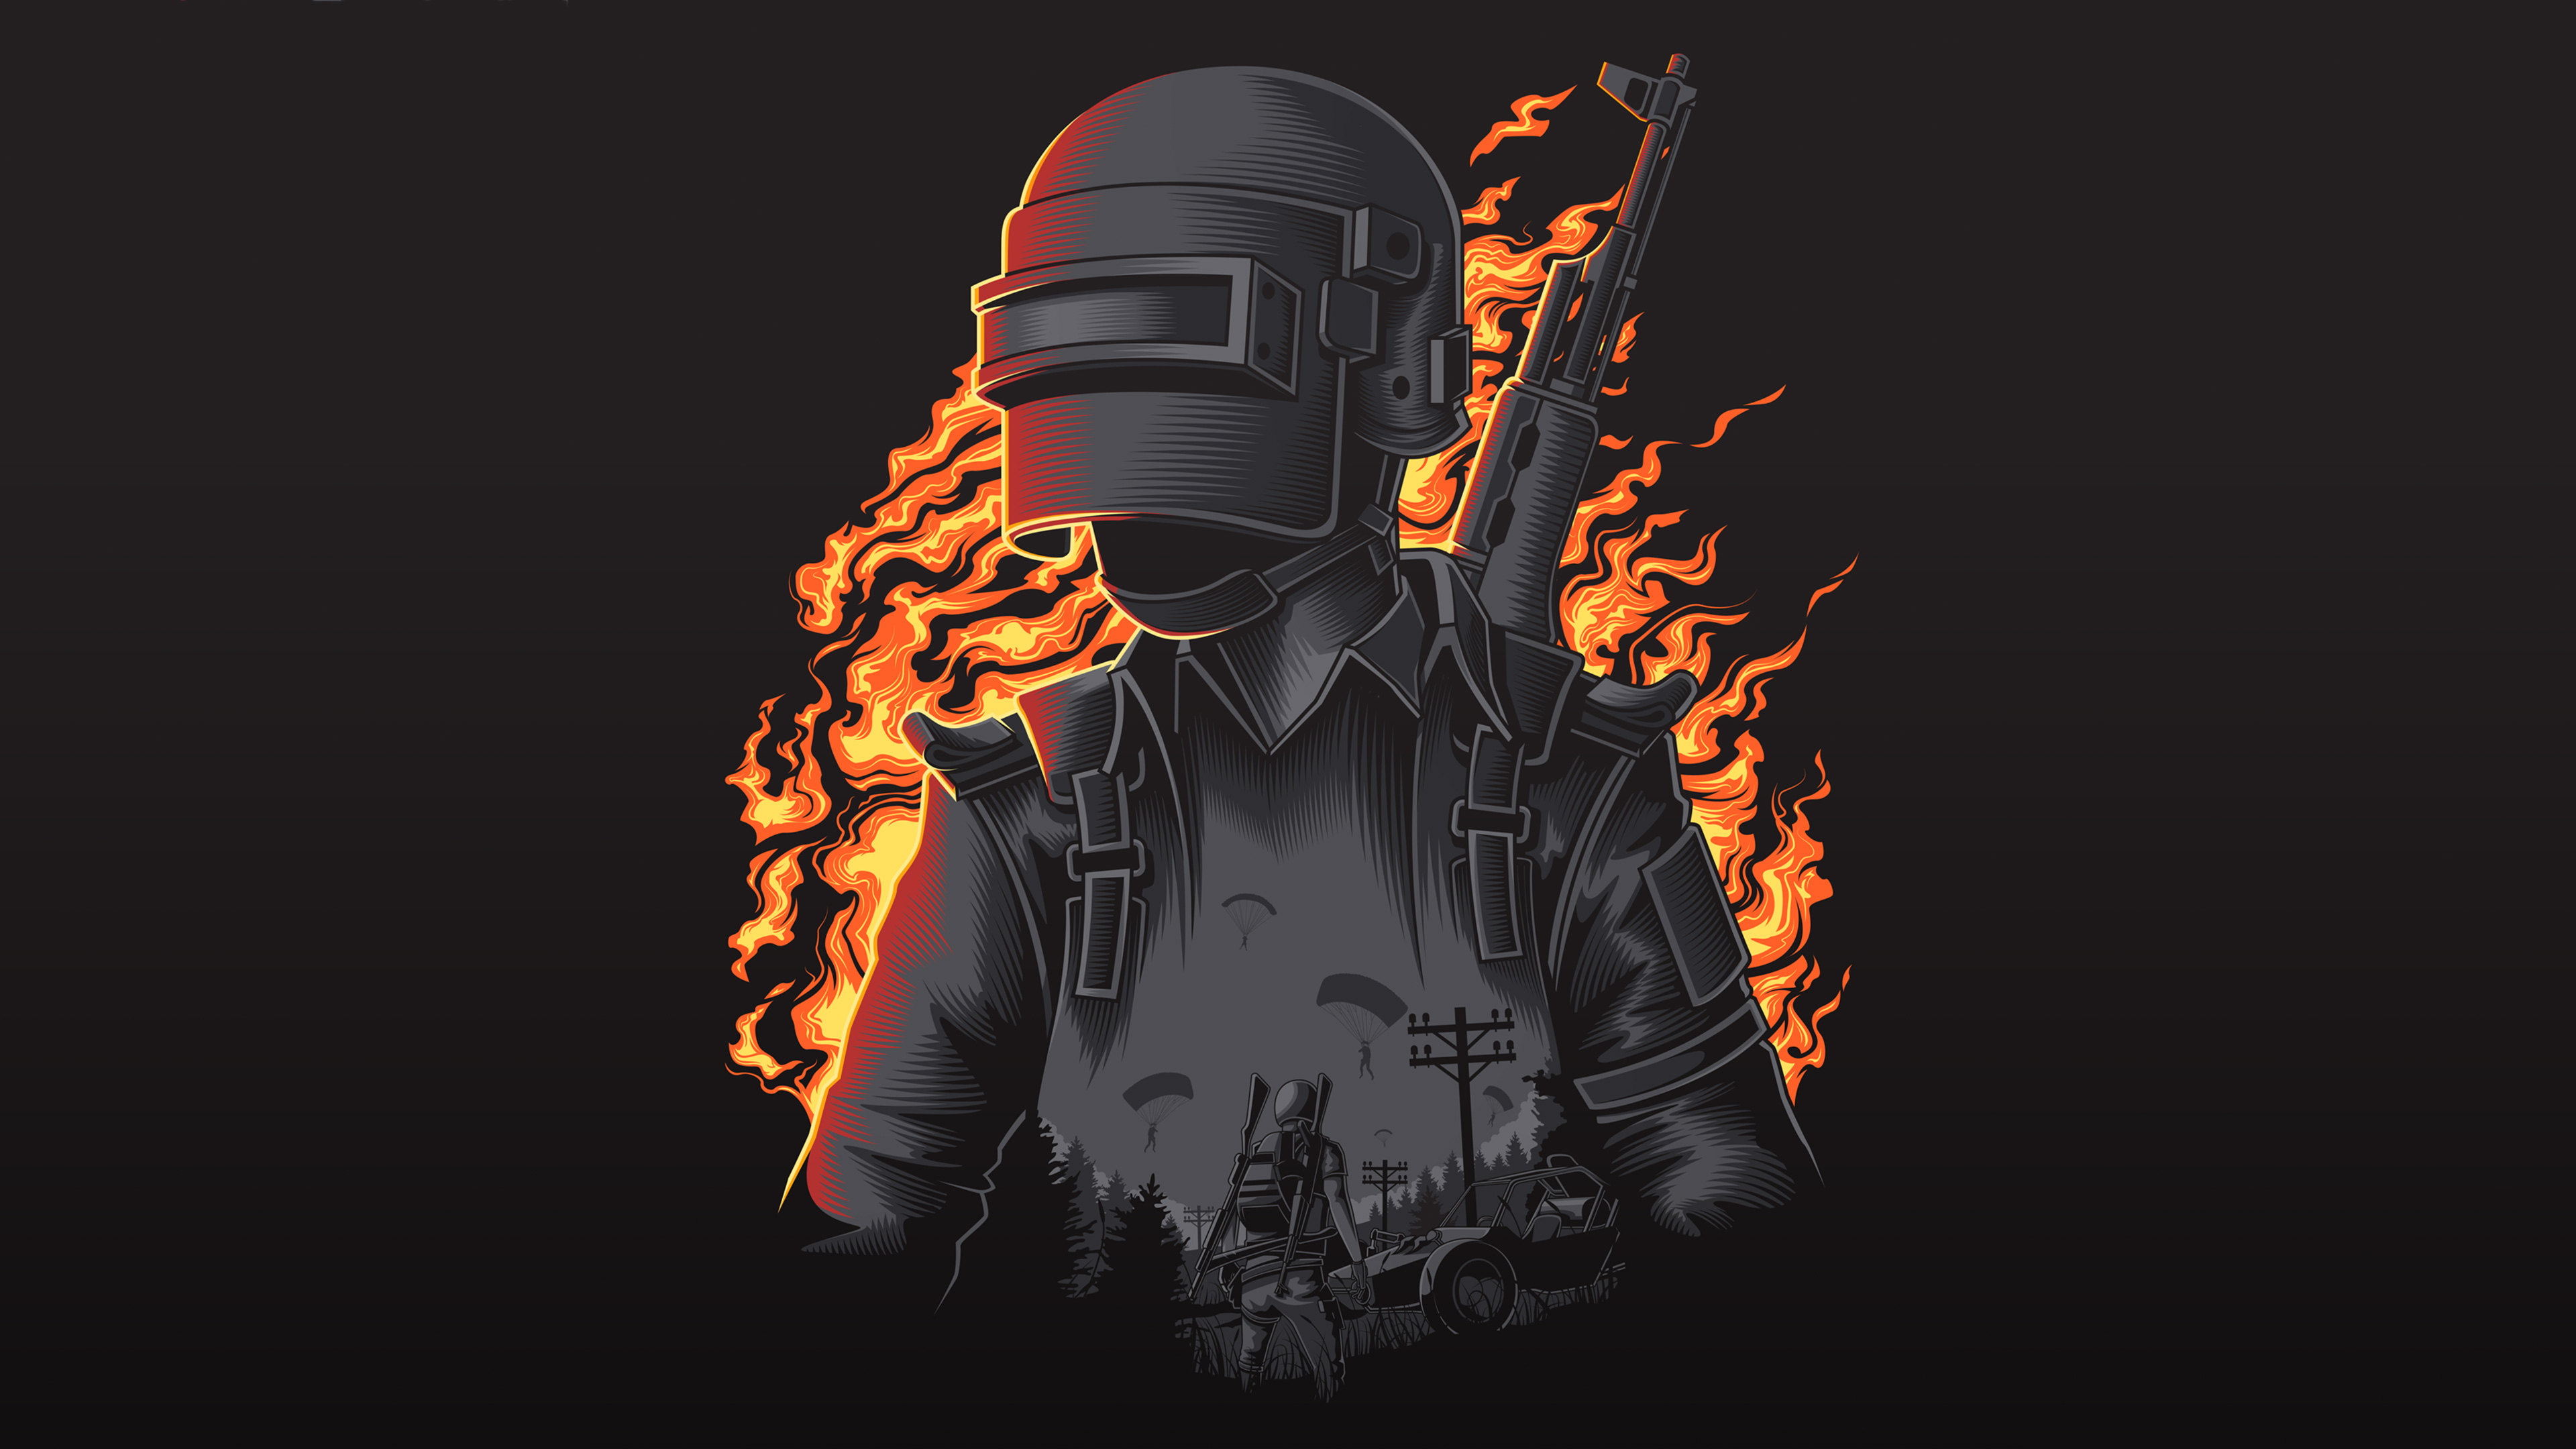 Pubg Lite Wallpaper Hd: Pubg Illustration 4k, HD Games, 4k Wallpapers, Images